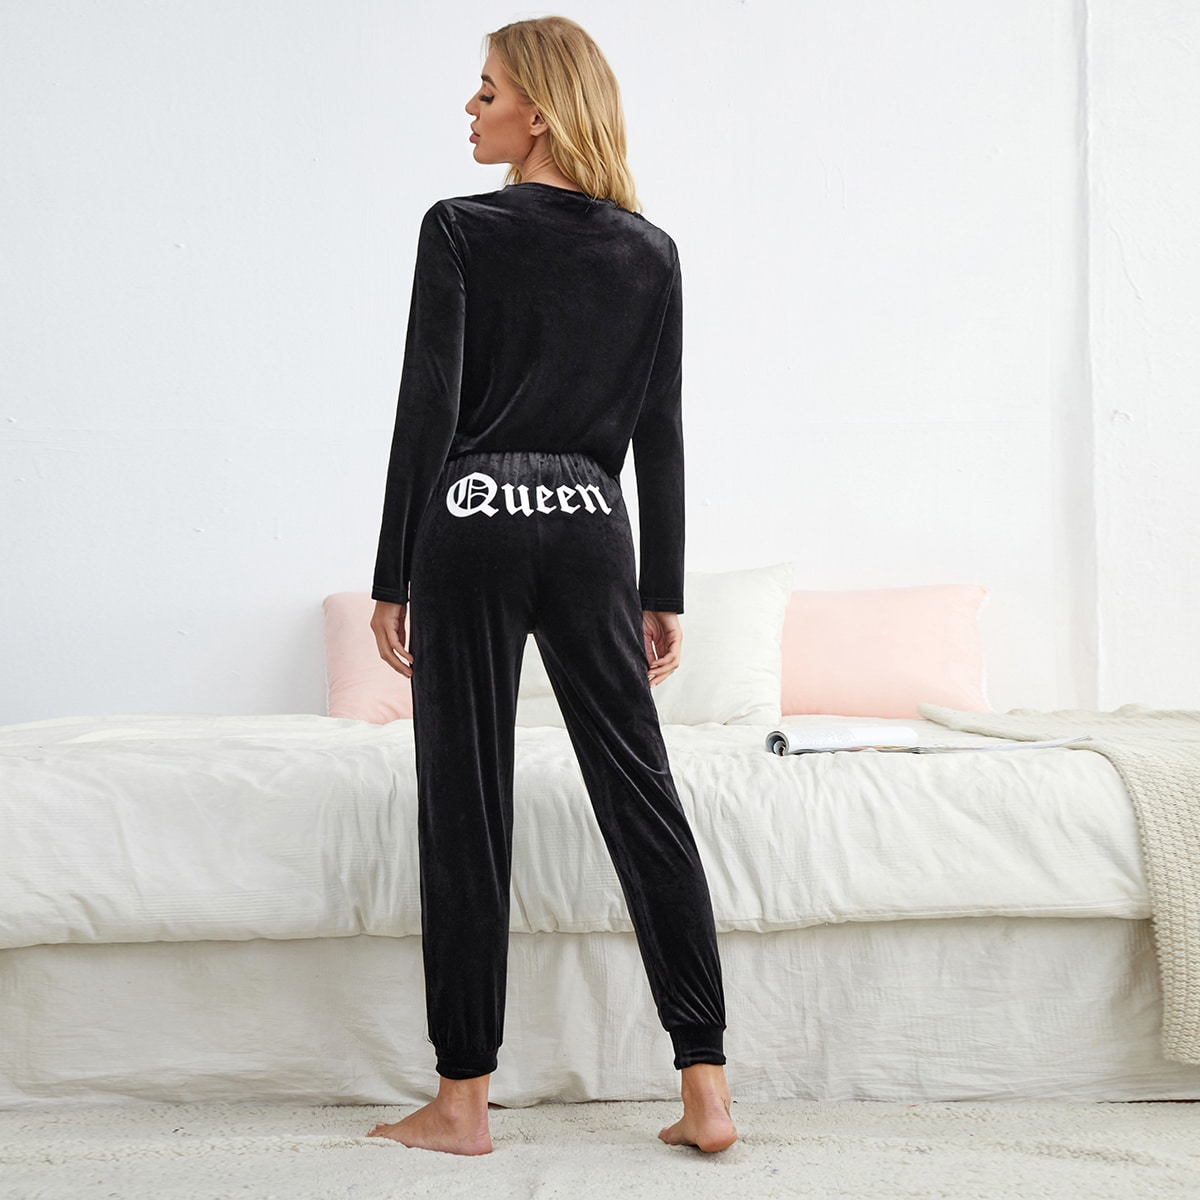 Velvet Letter Graphic Lounge Set, SHEIN  - buy with discount